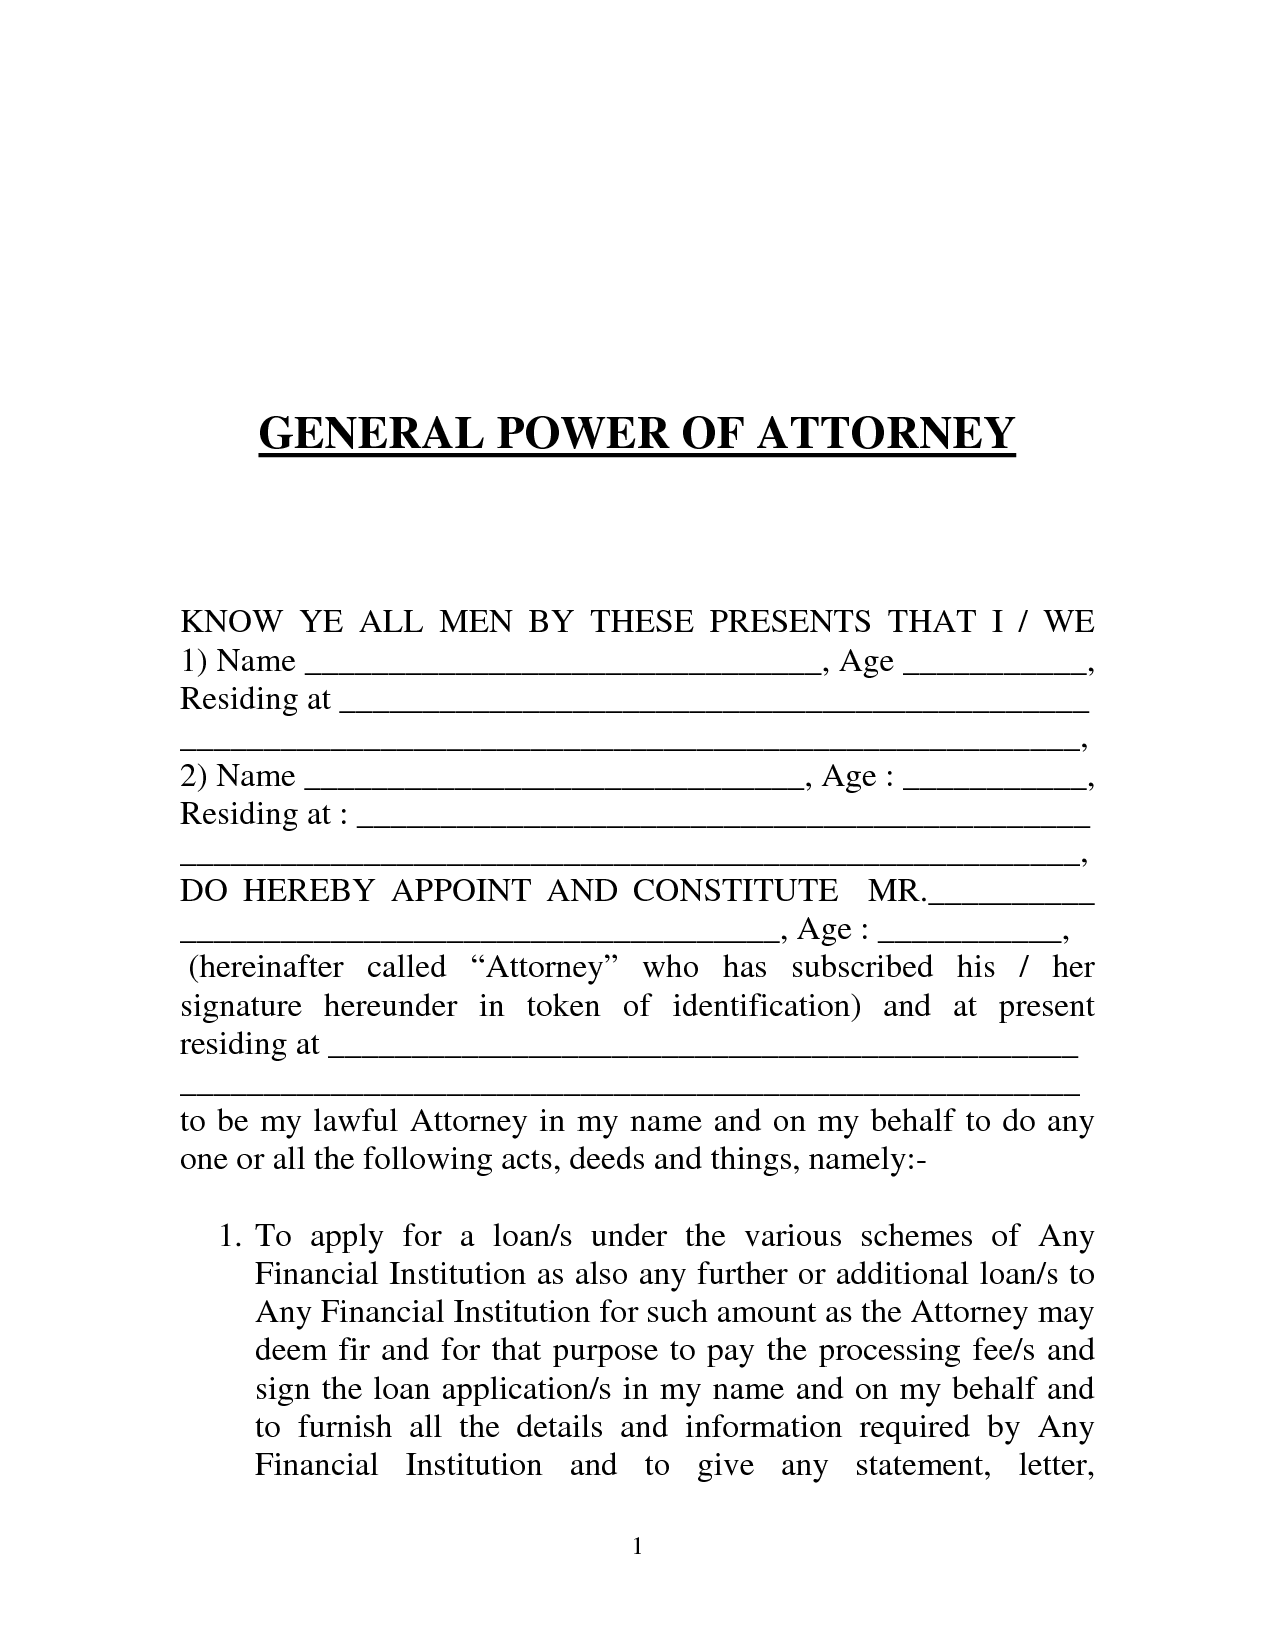 printable simple power of attorney form  power of atttorney template | General Power Of Attorney Form ...